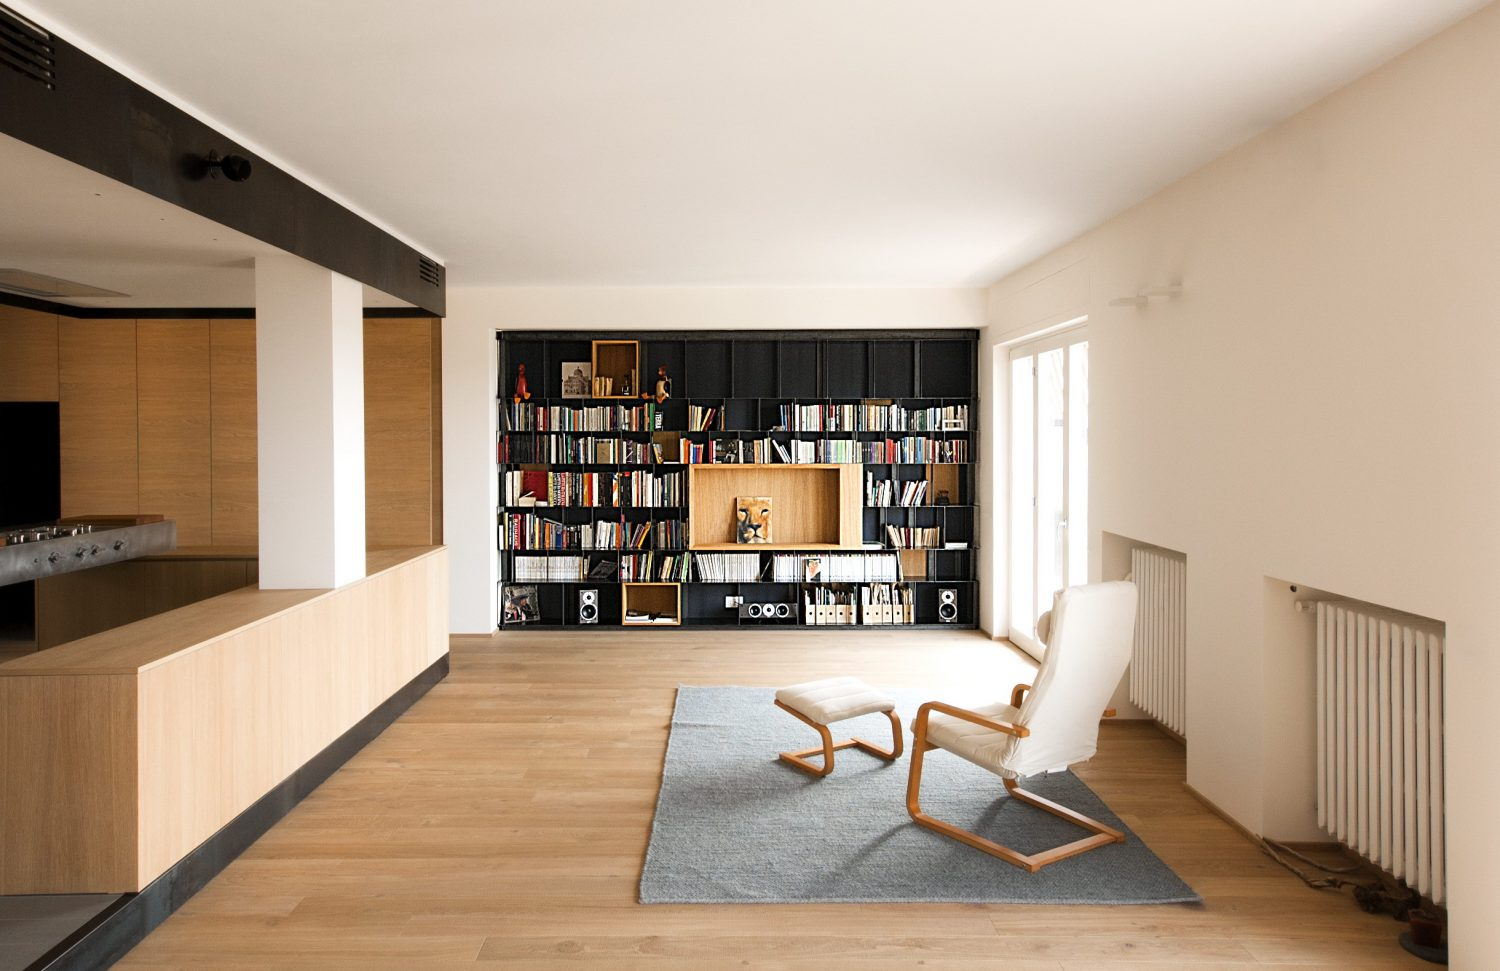 Wood and Iron Apartment by Luca Compri (LCArchitetti)